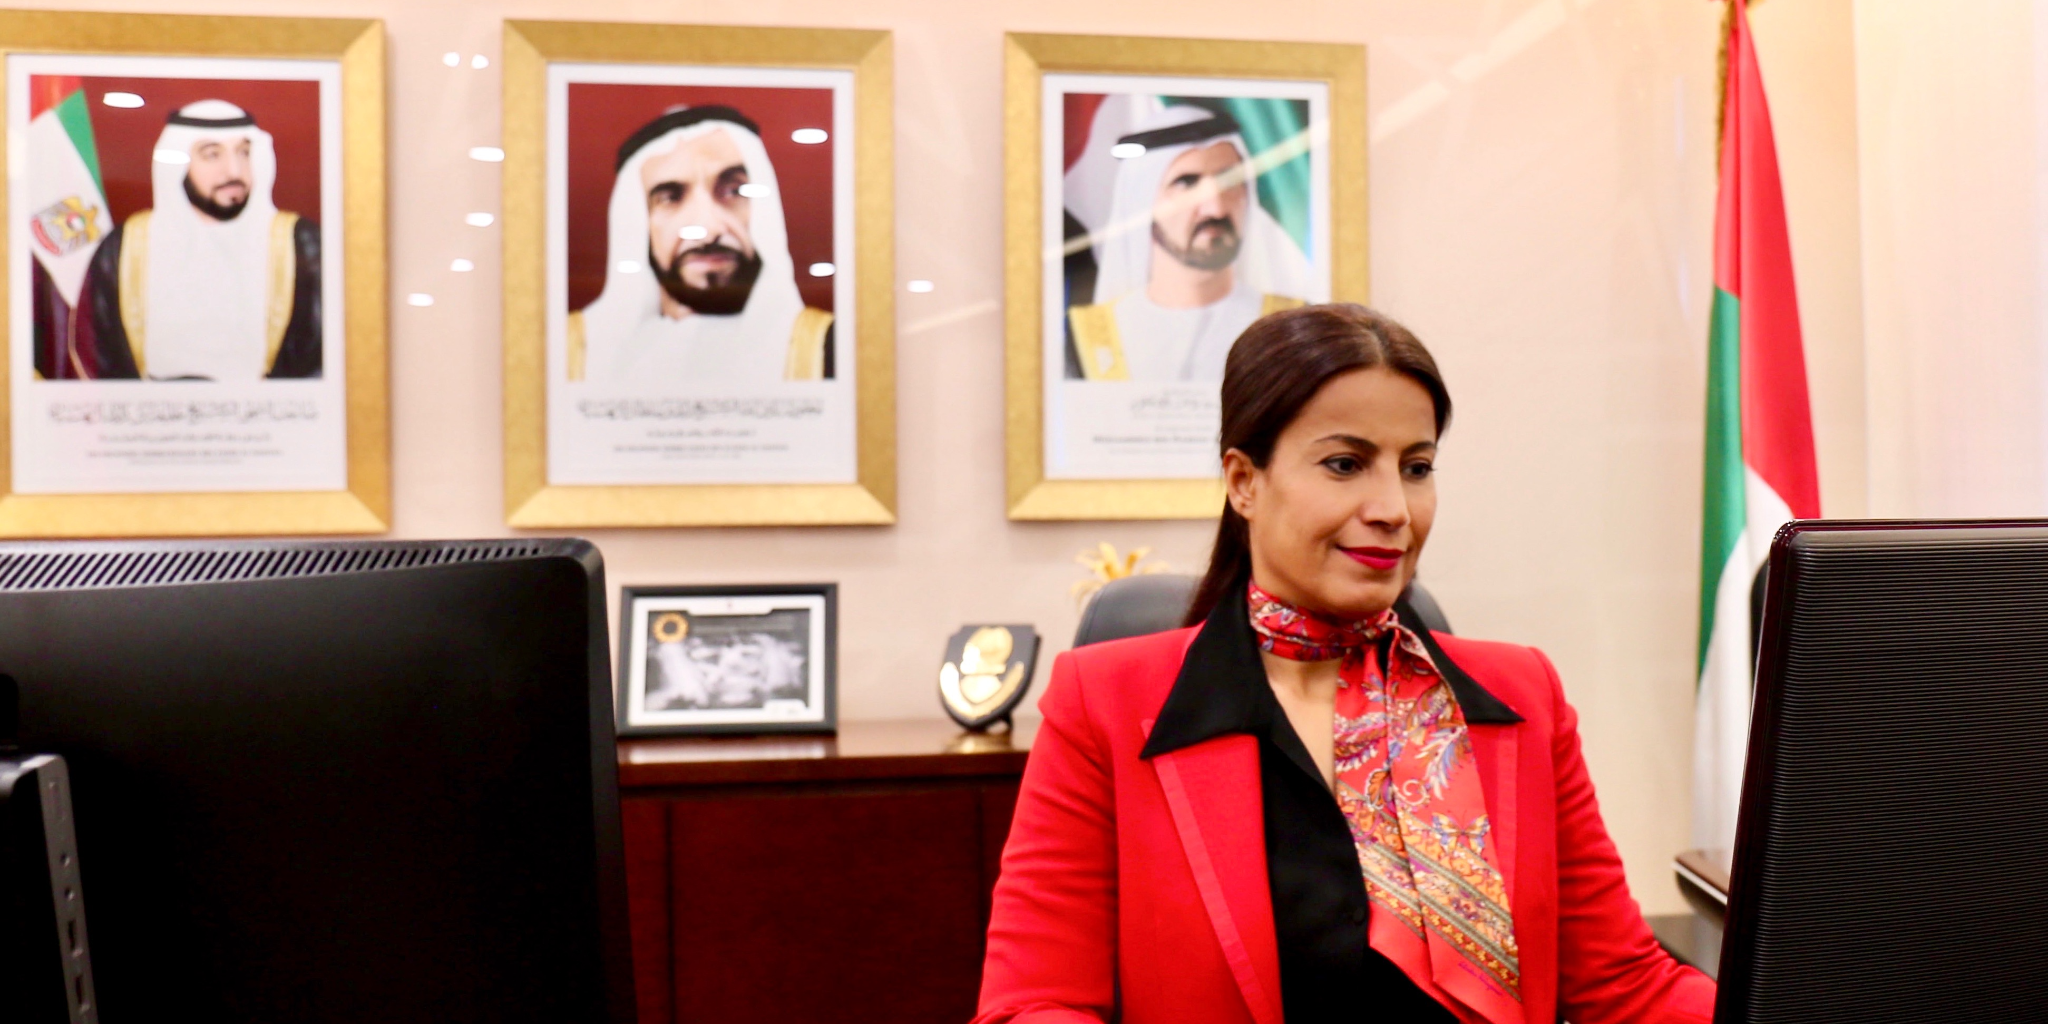 Exclusive | Q&A with UAE Consulate in HKSAR: How to better promote economic and cultural exchanges?